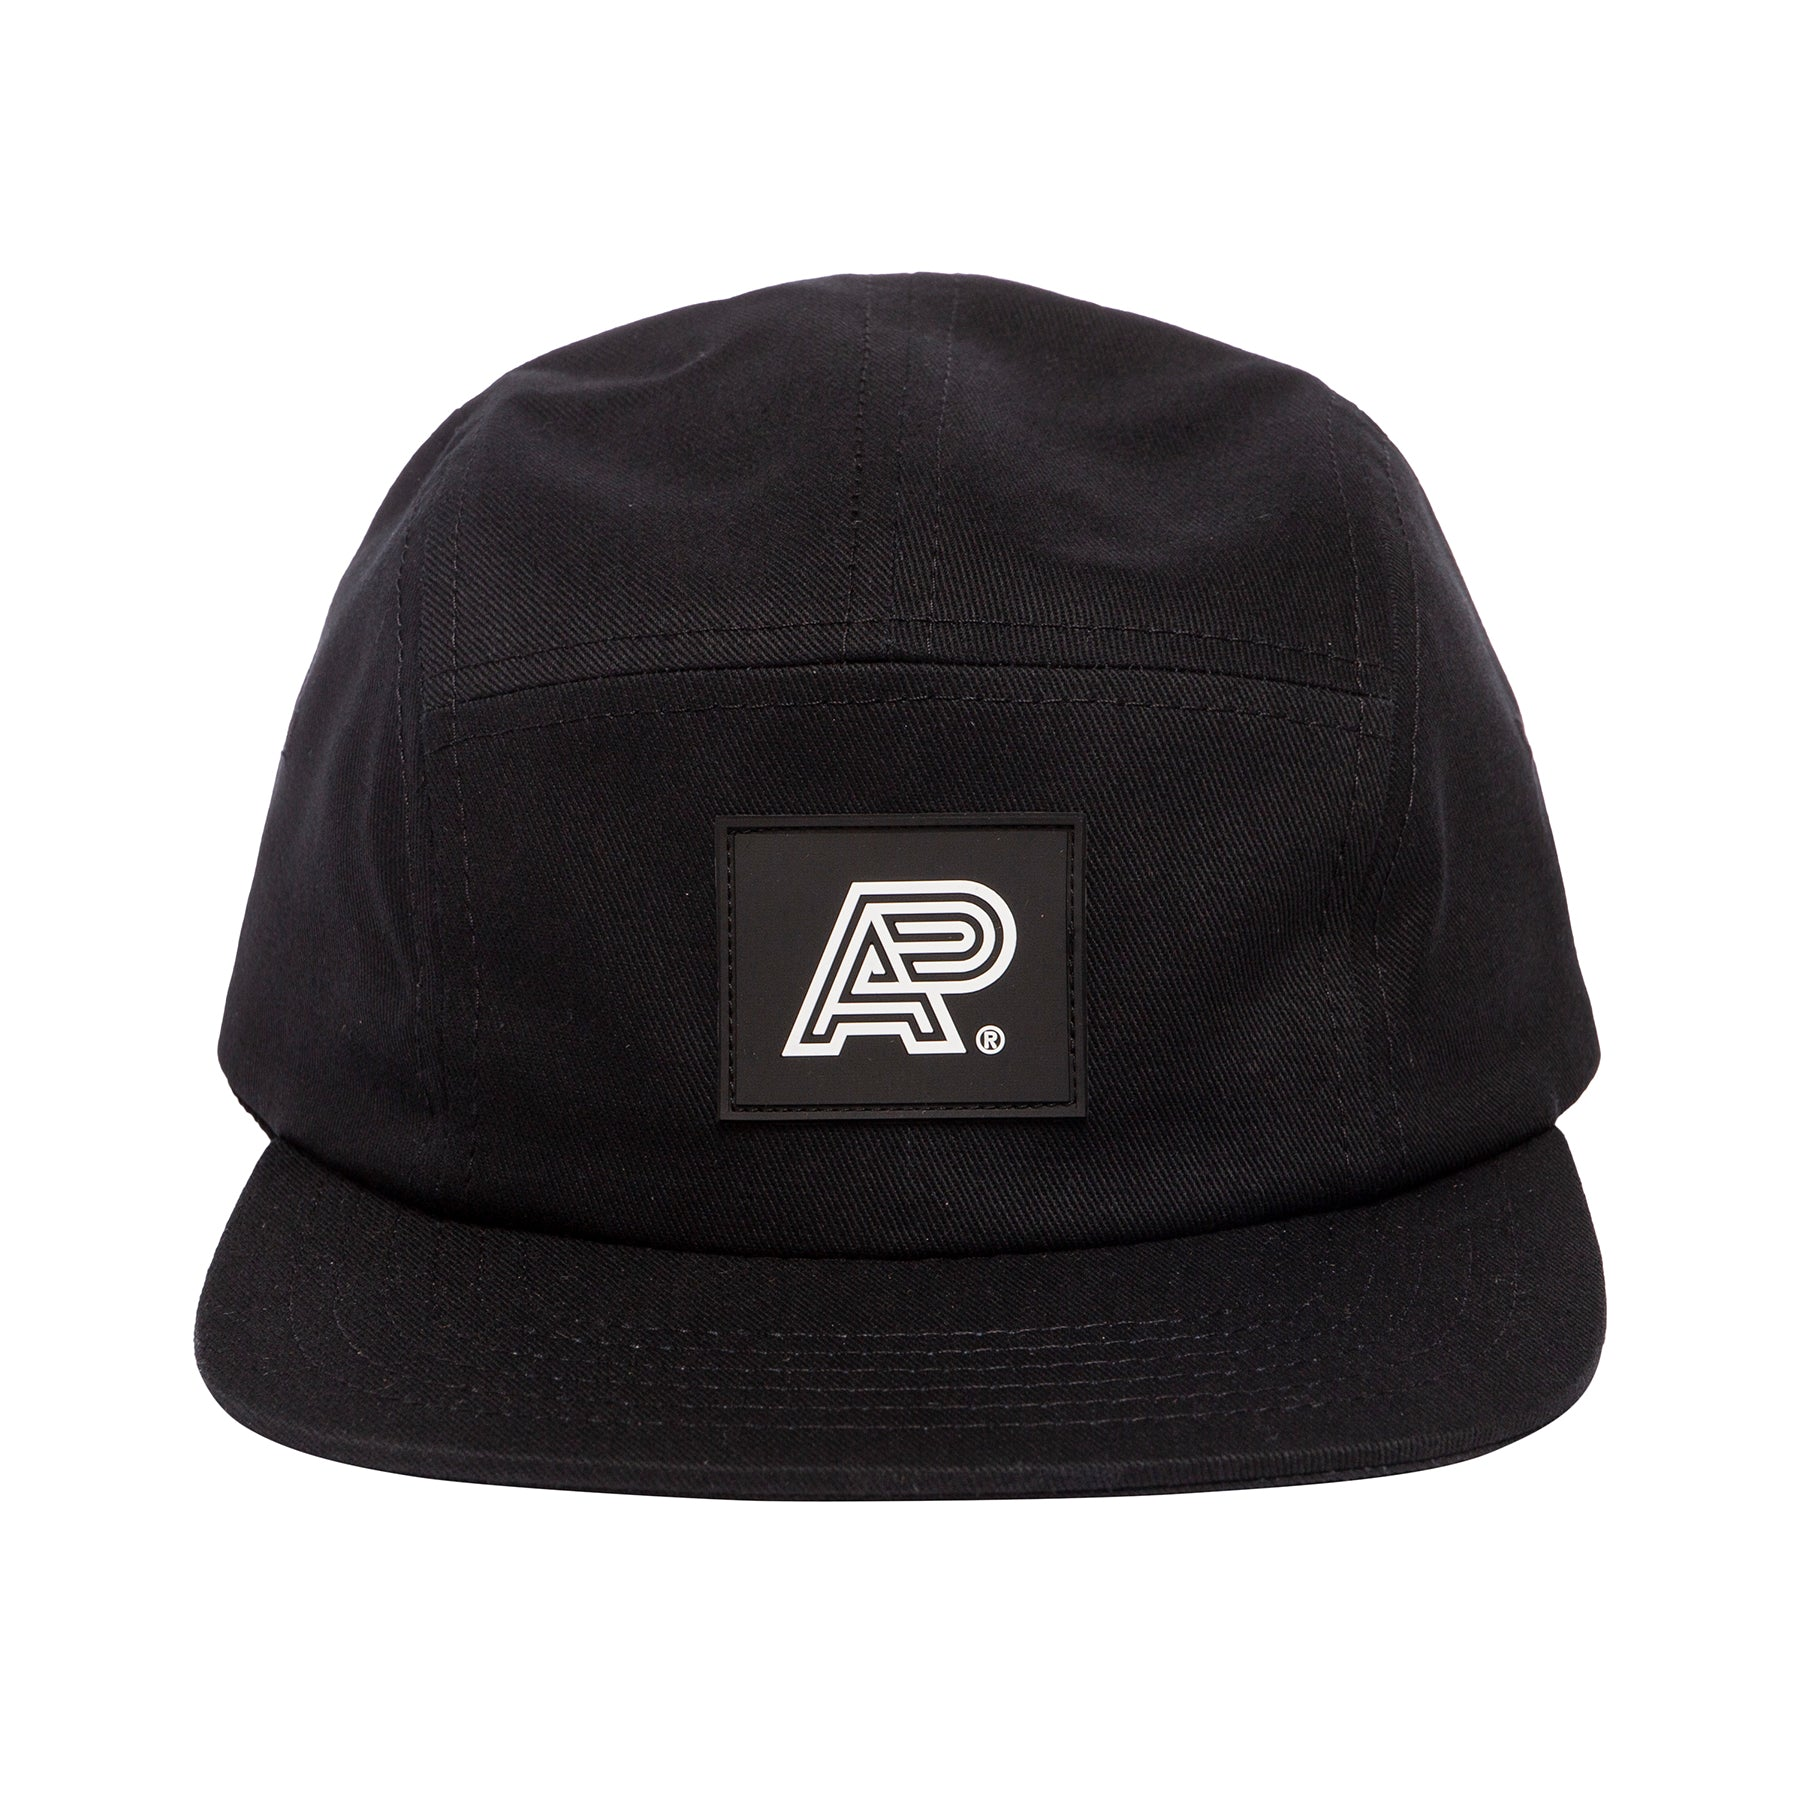 AP 5 panel twill camp cap (FULFILLMENT)